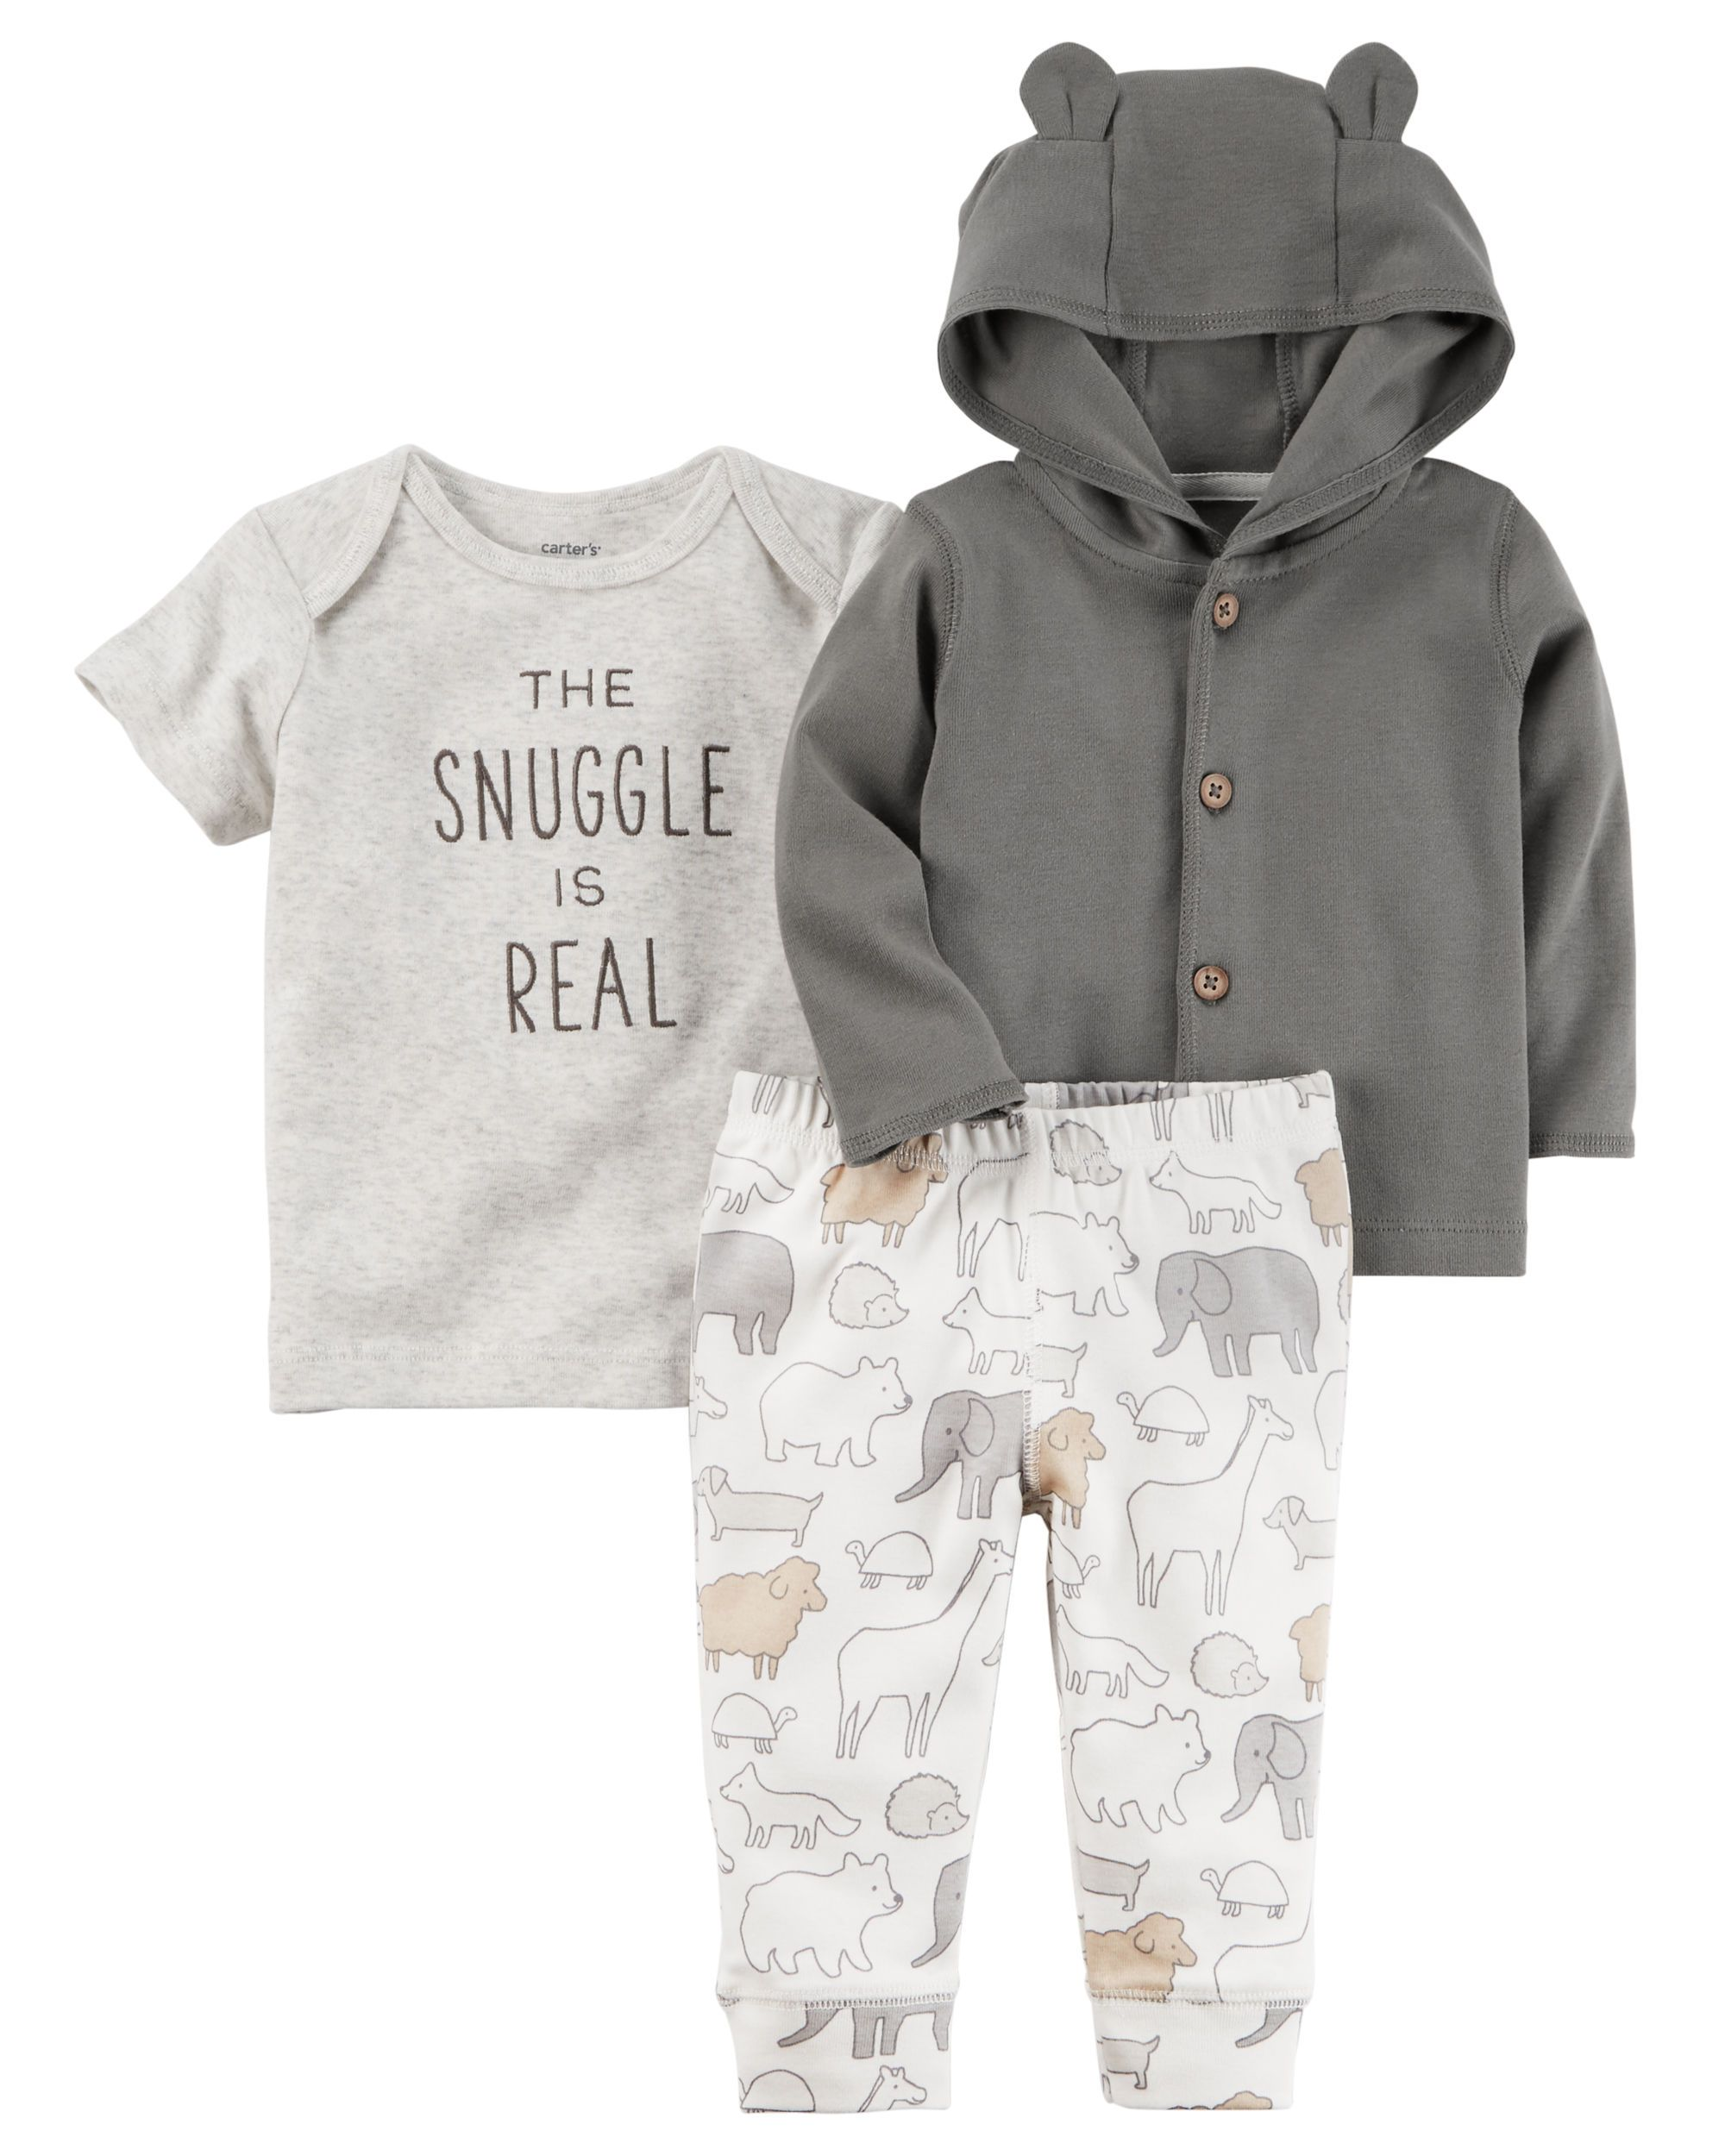 d555b9c5e Baby Neutral 3-Piece Babysoft Little Jacket Set from Carters.com. Shop  clothing & accessories from a trusted name in kids, toddlers, and baby  clothes.